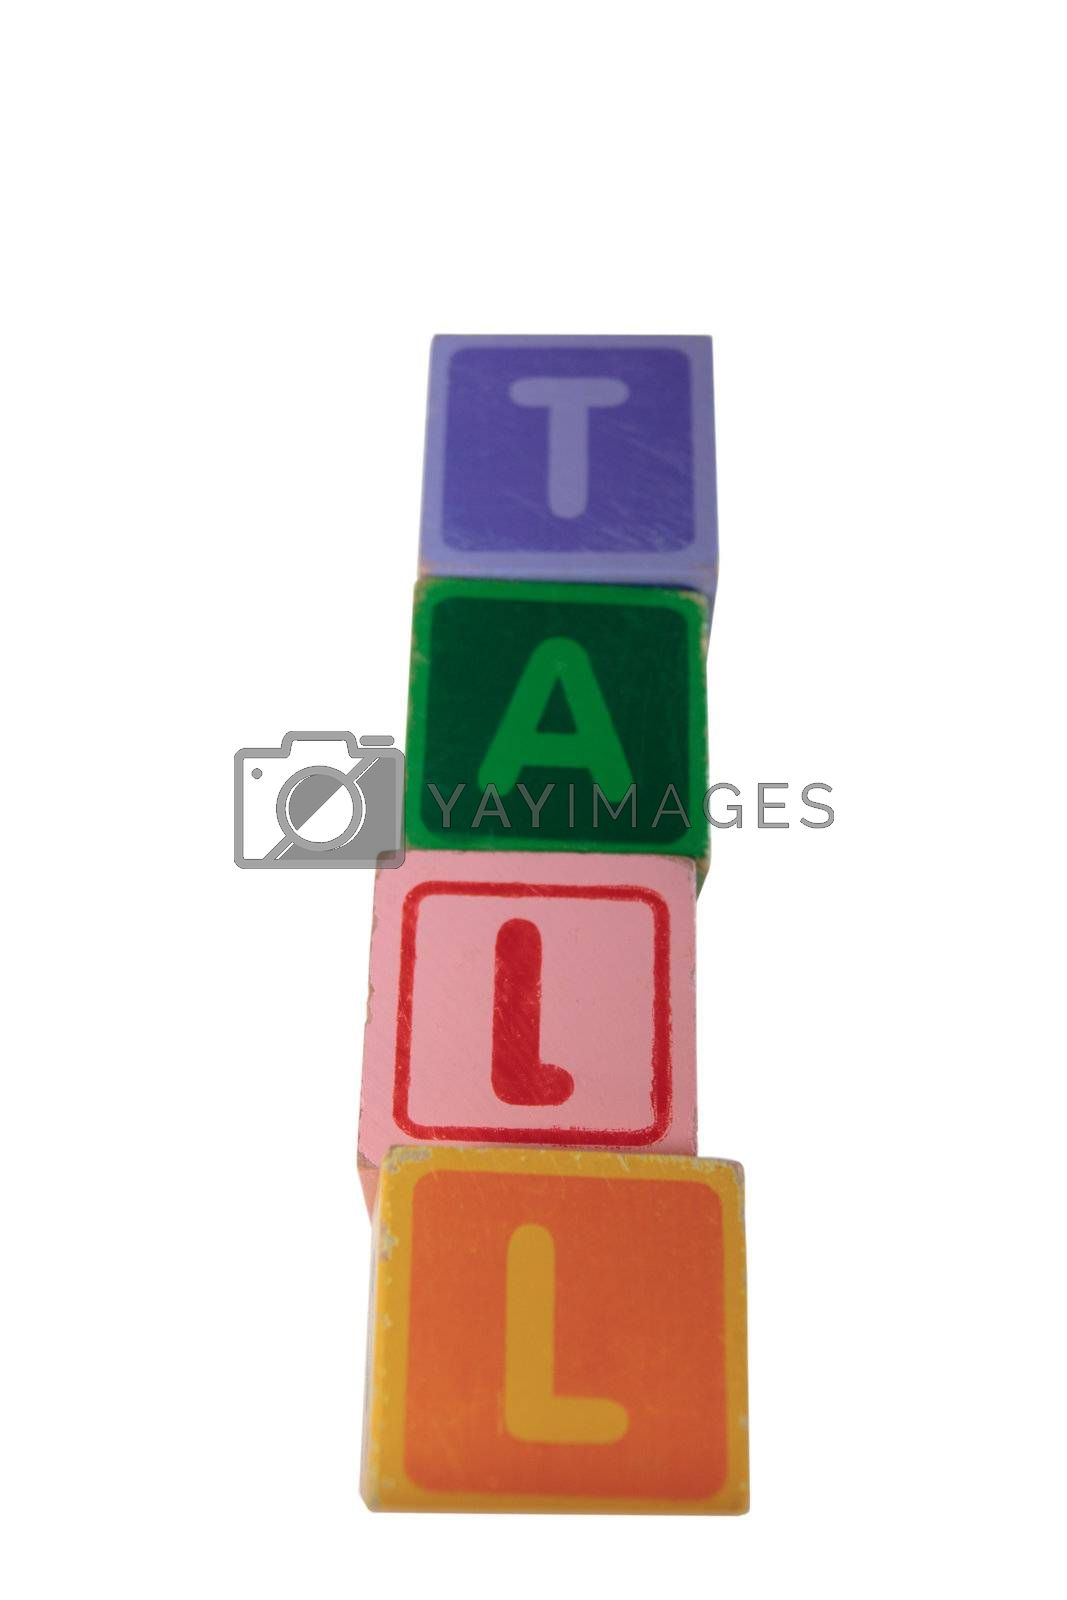 Royalty free image of tall assorted toy play blocks by morrbyte